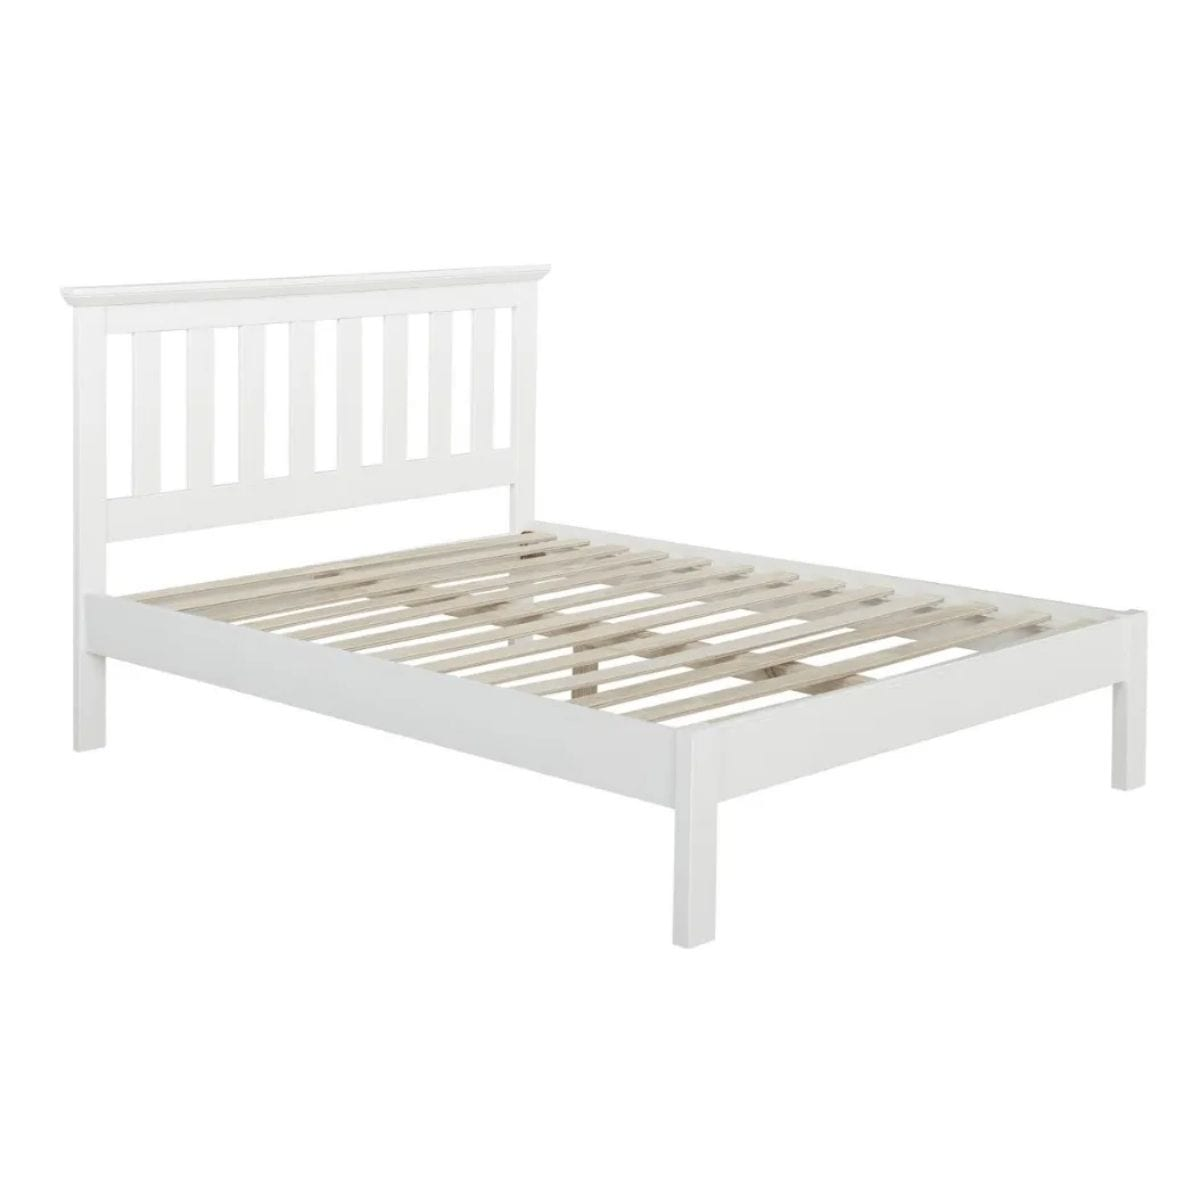 Cream Wooden Bed Frame